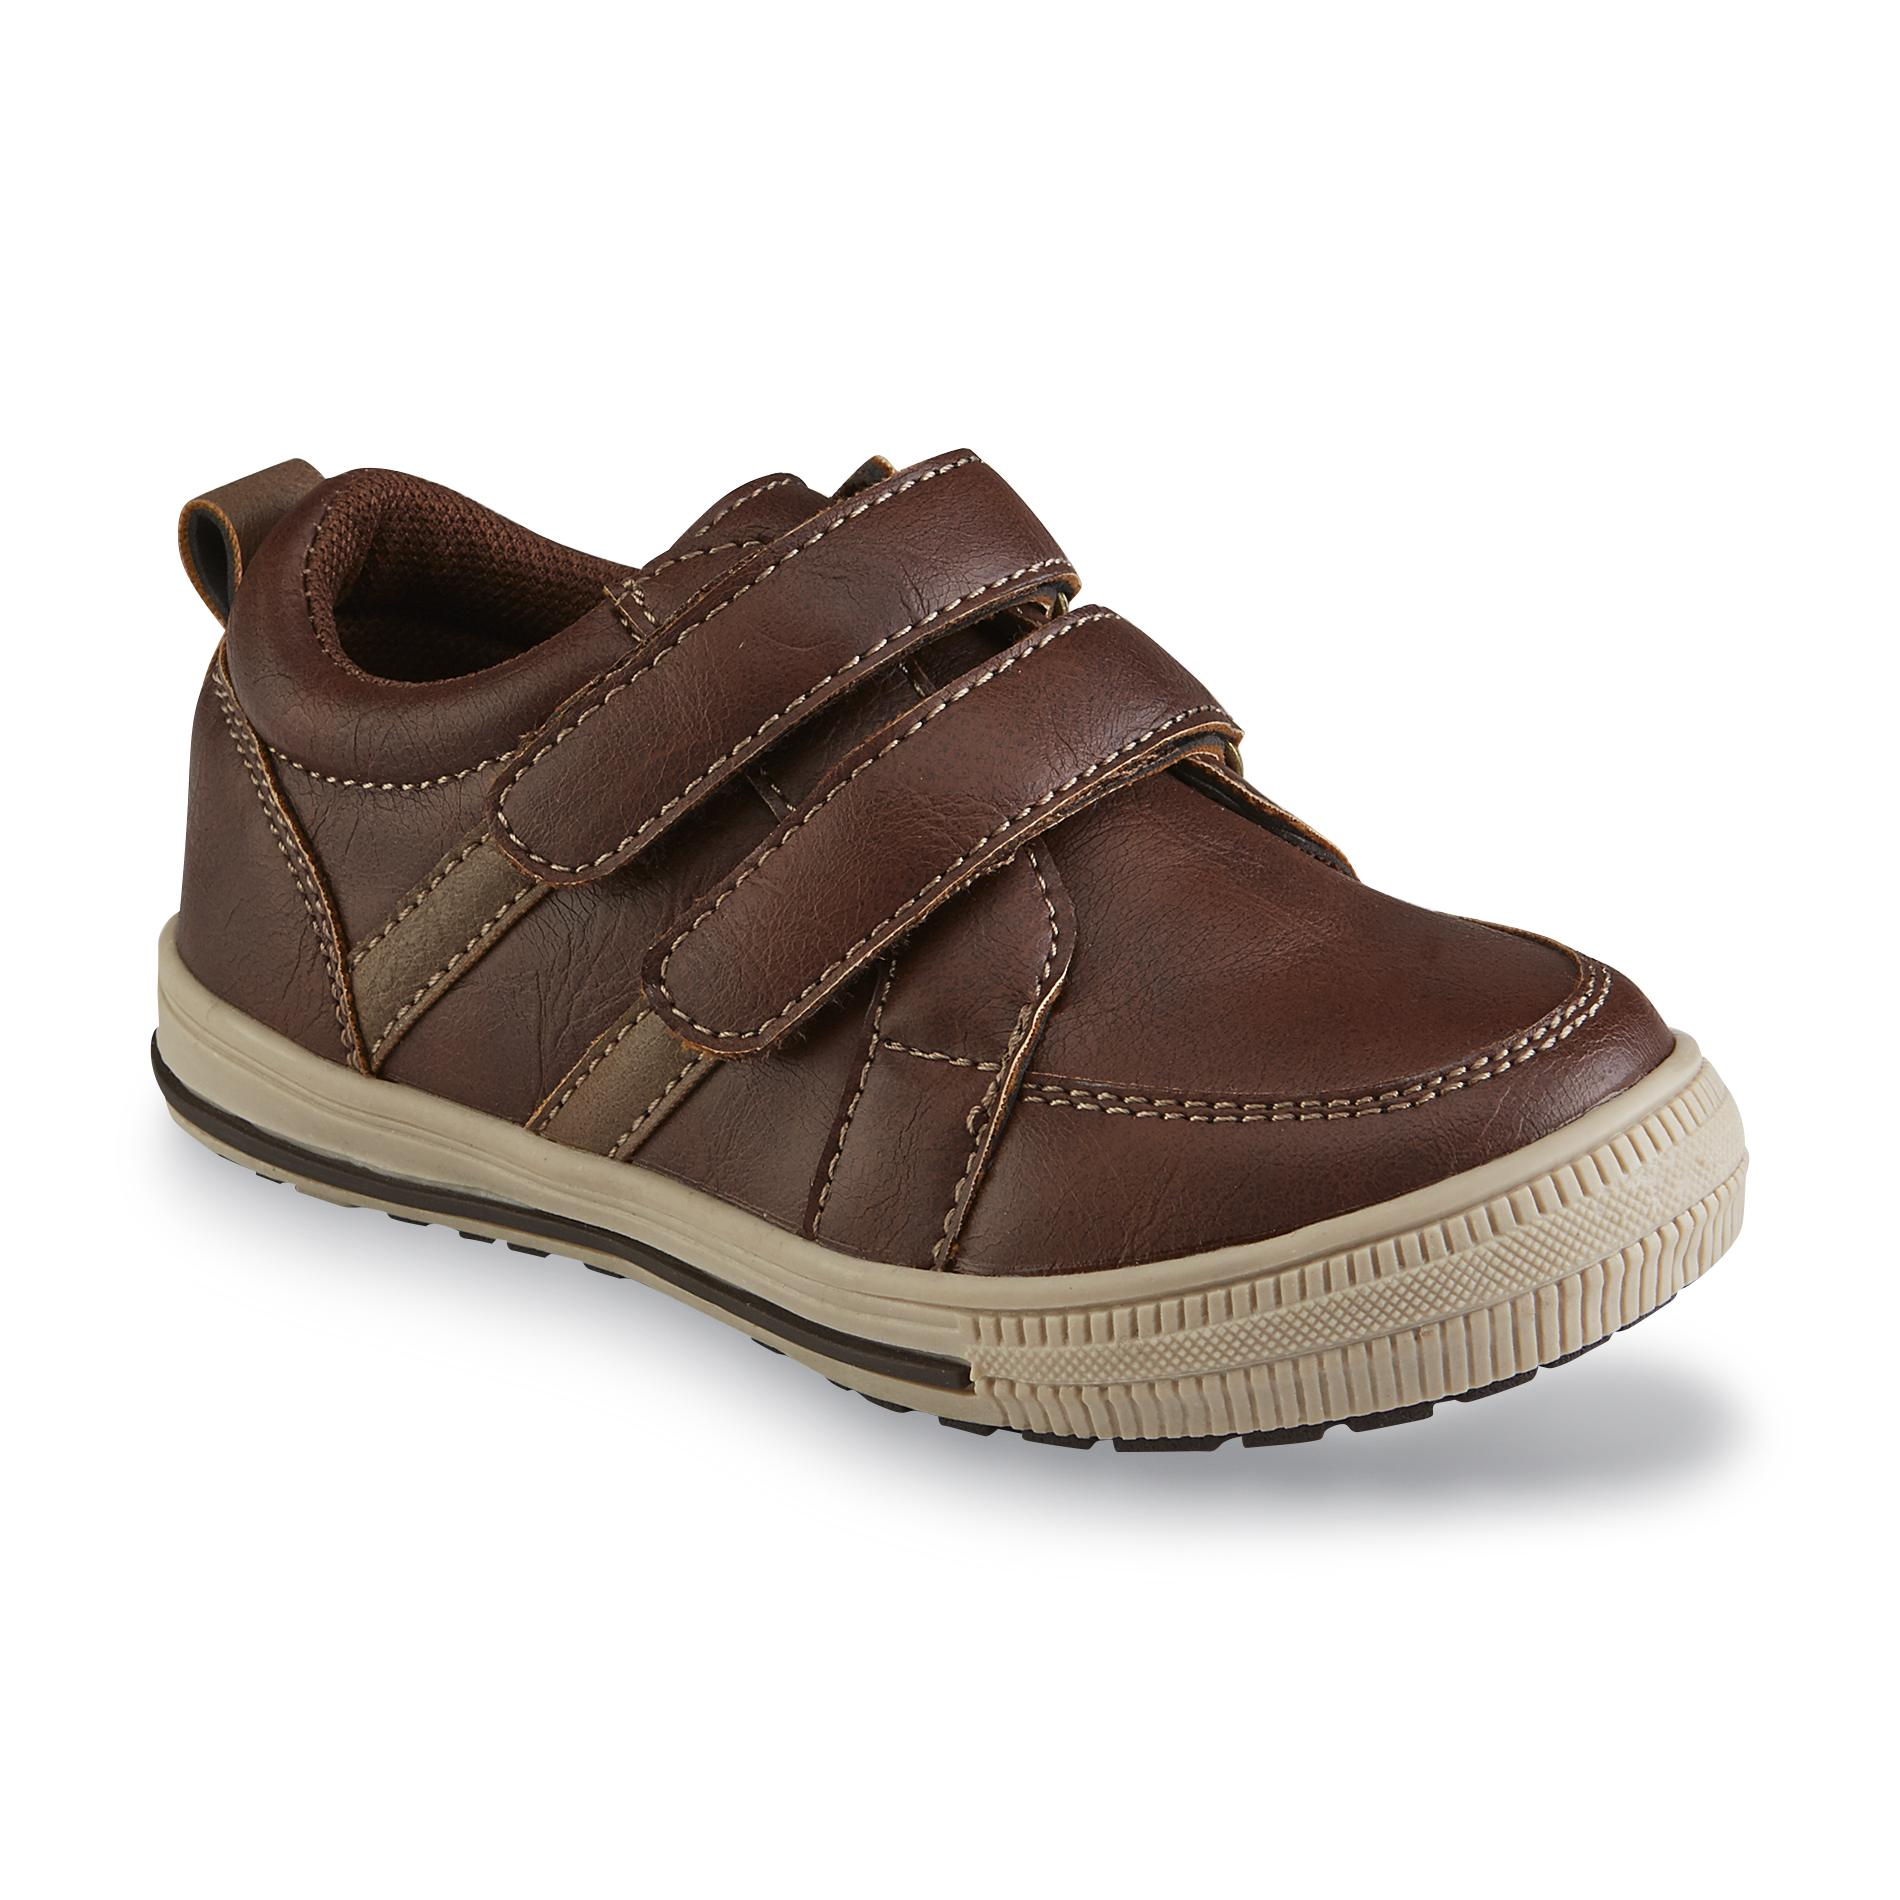 Brown Oxford Shoes Toddler